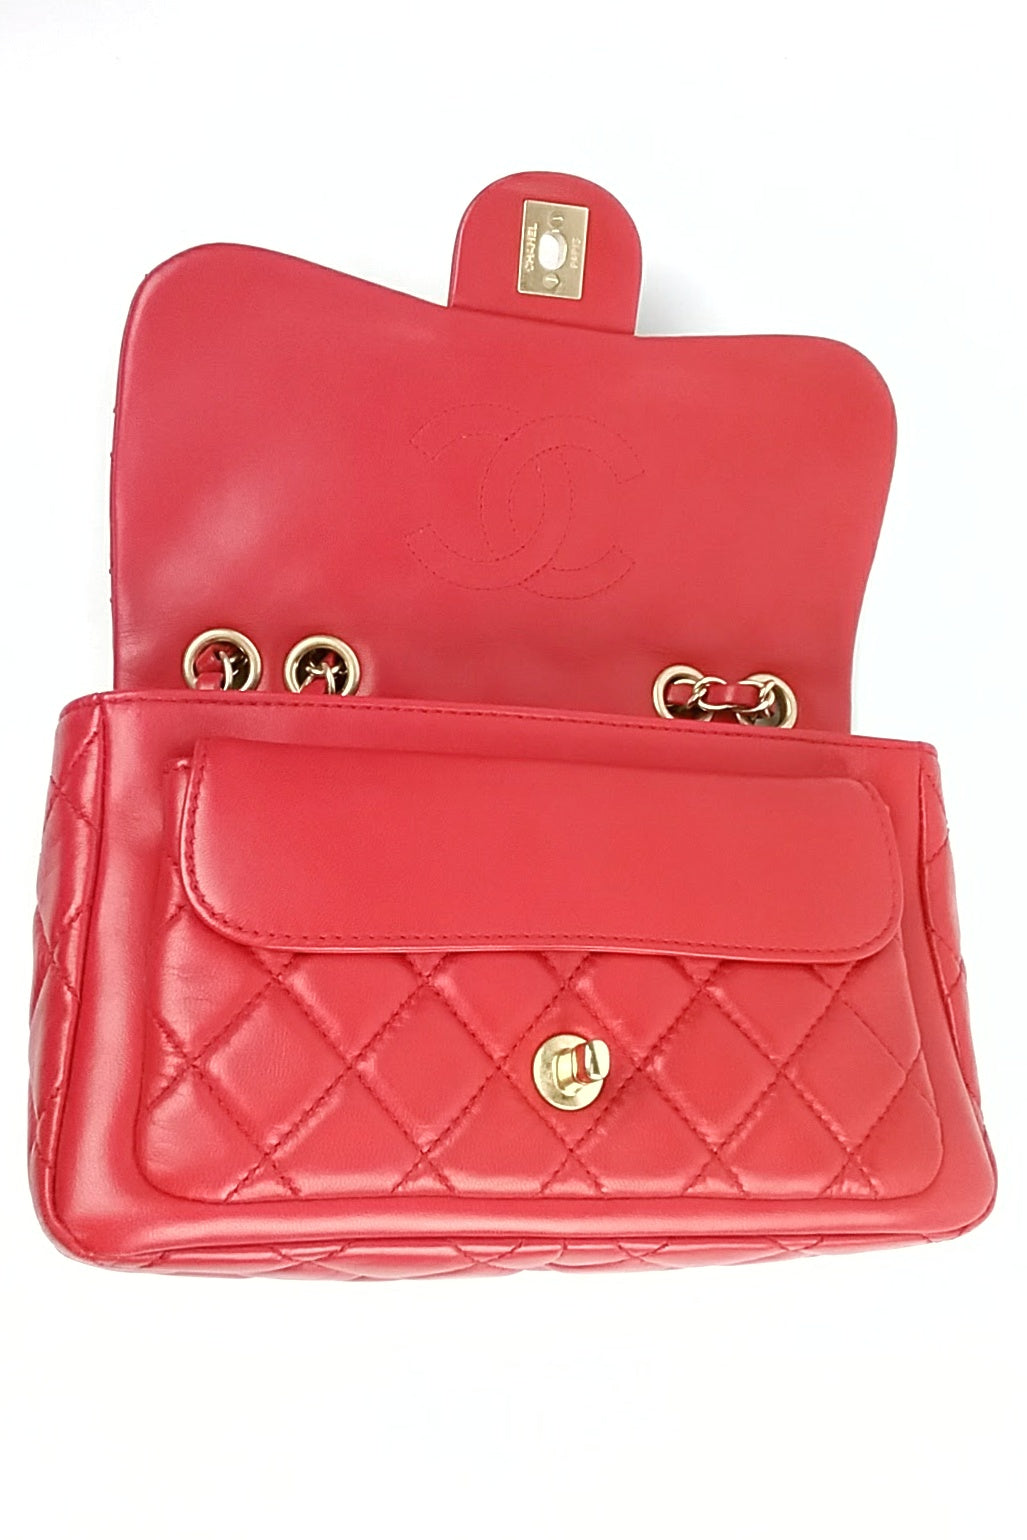 Chanel Red Lambskin Matelasse Flap Bag GHW